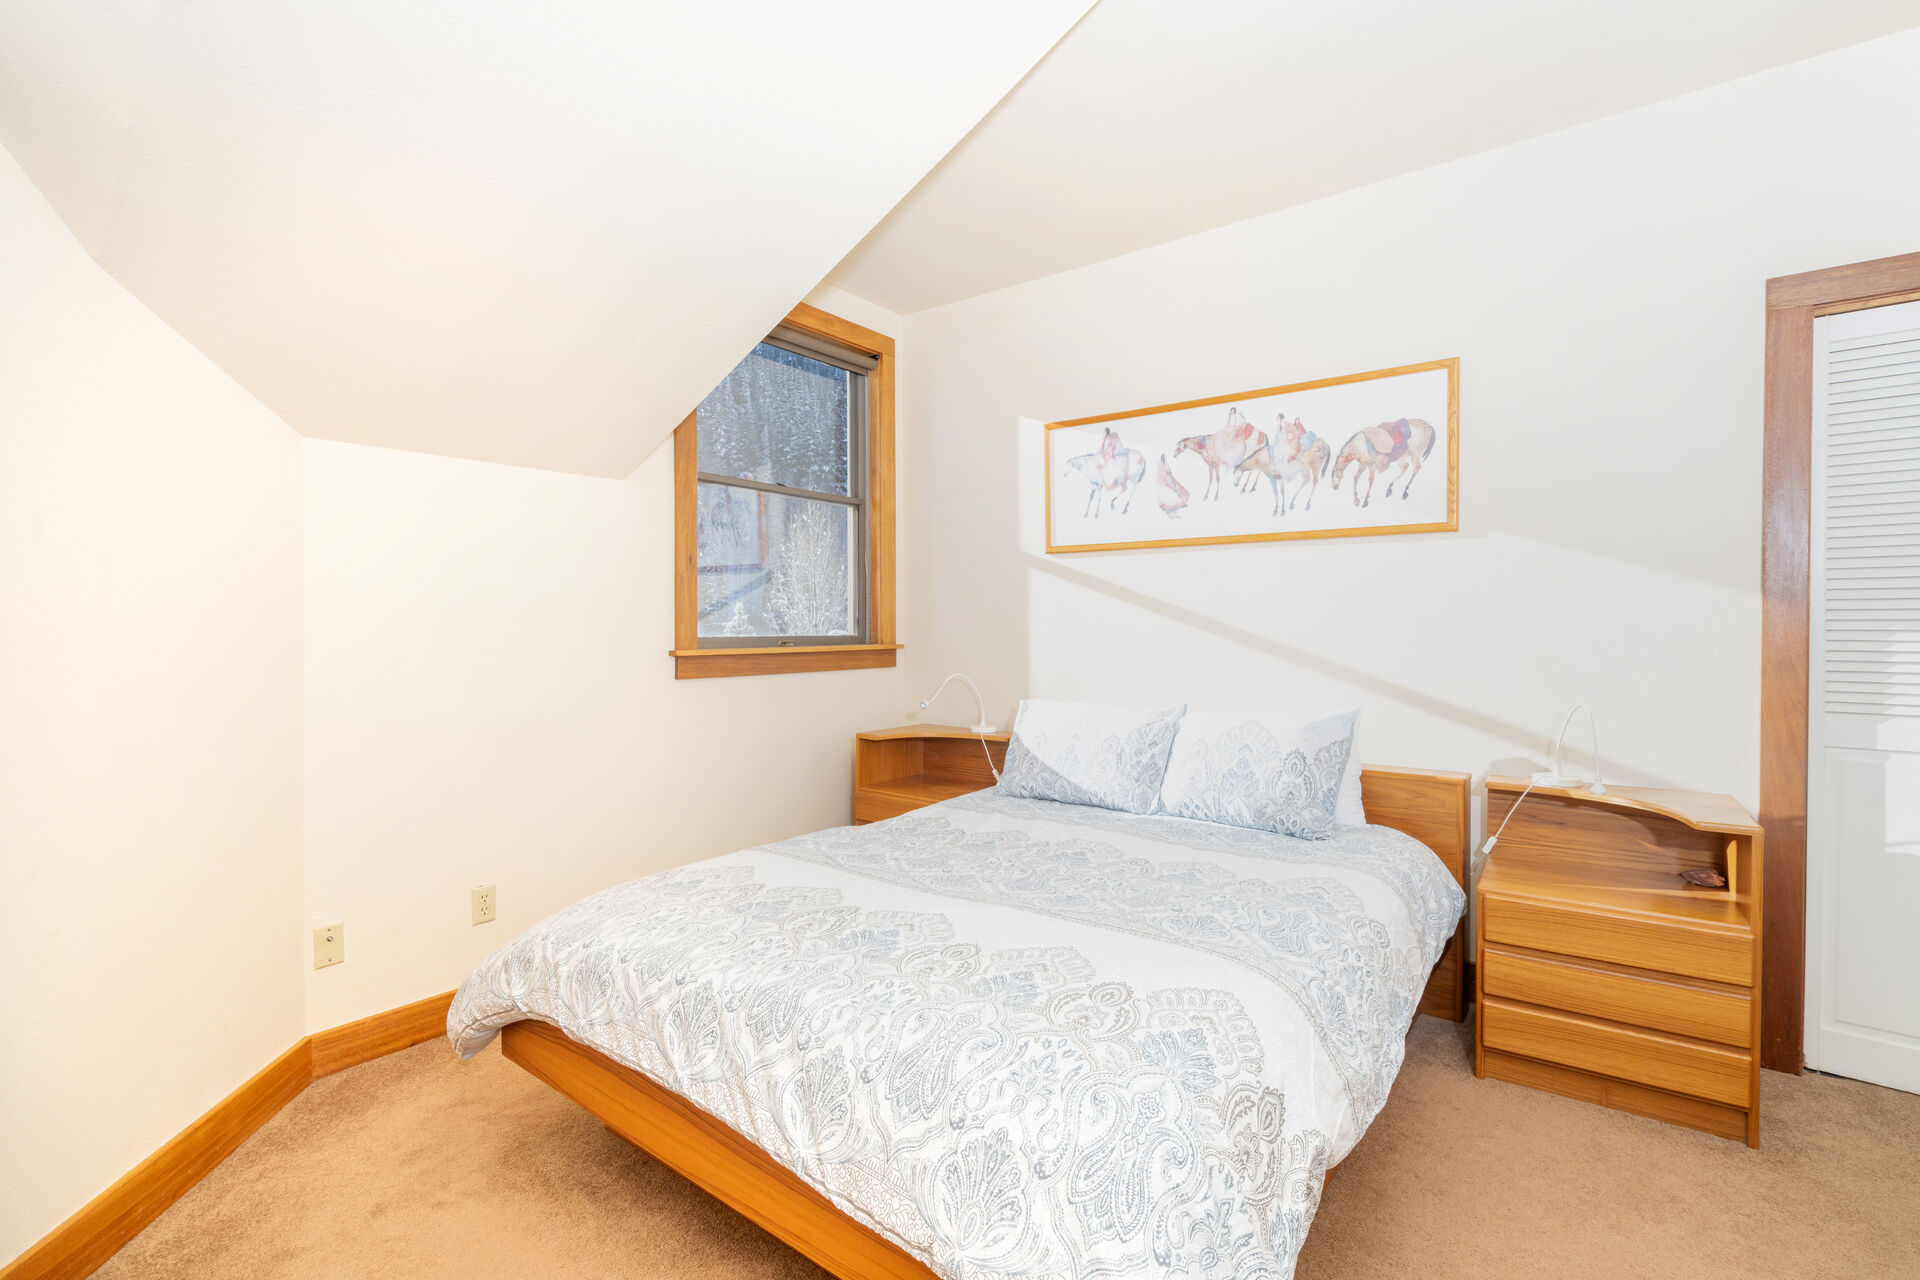 Second bedroom with a bed and a nightstand